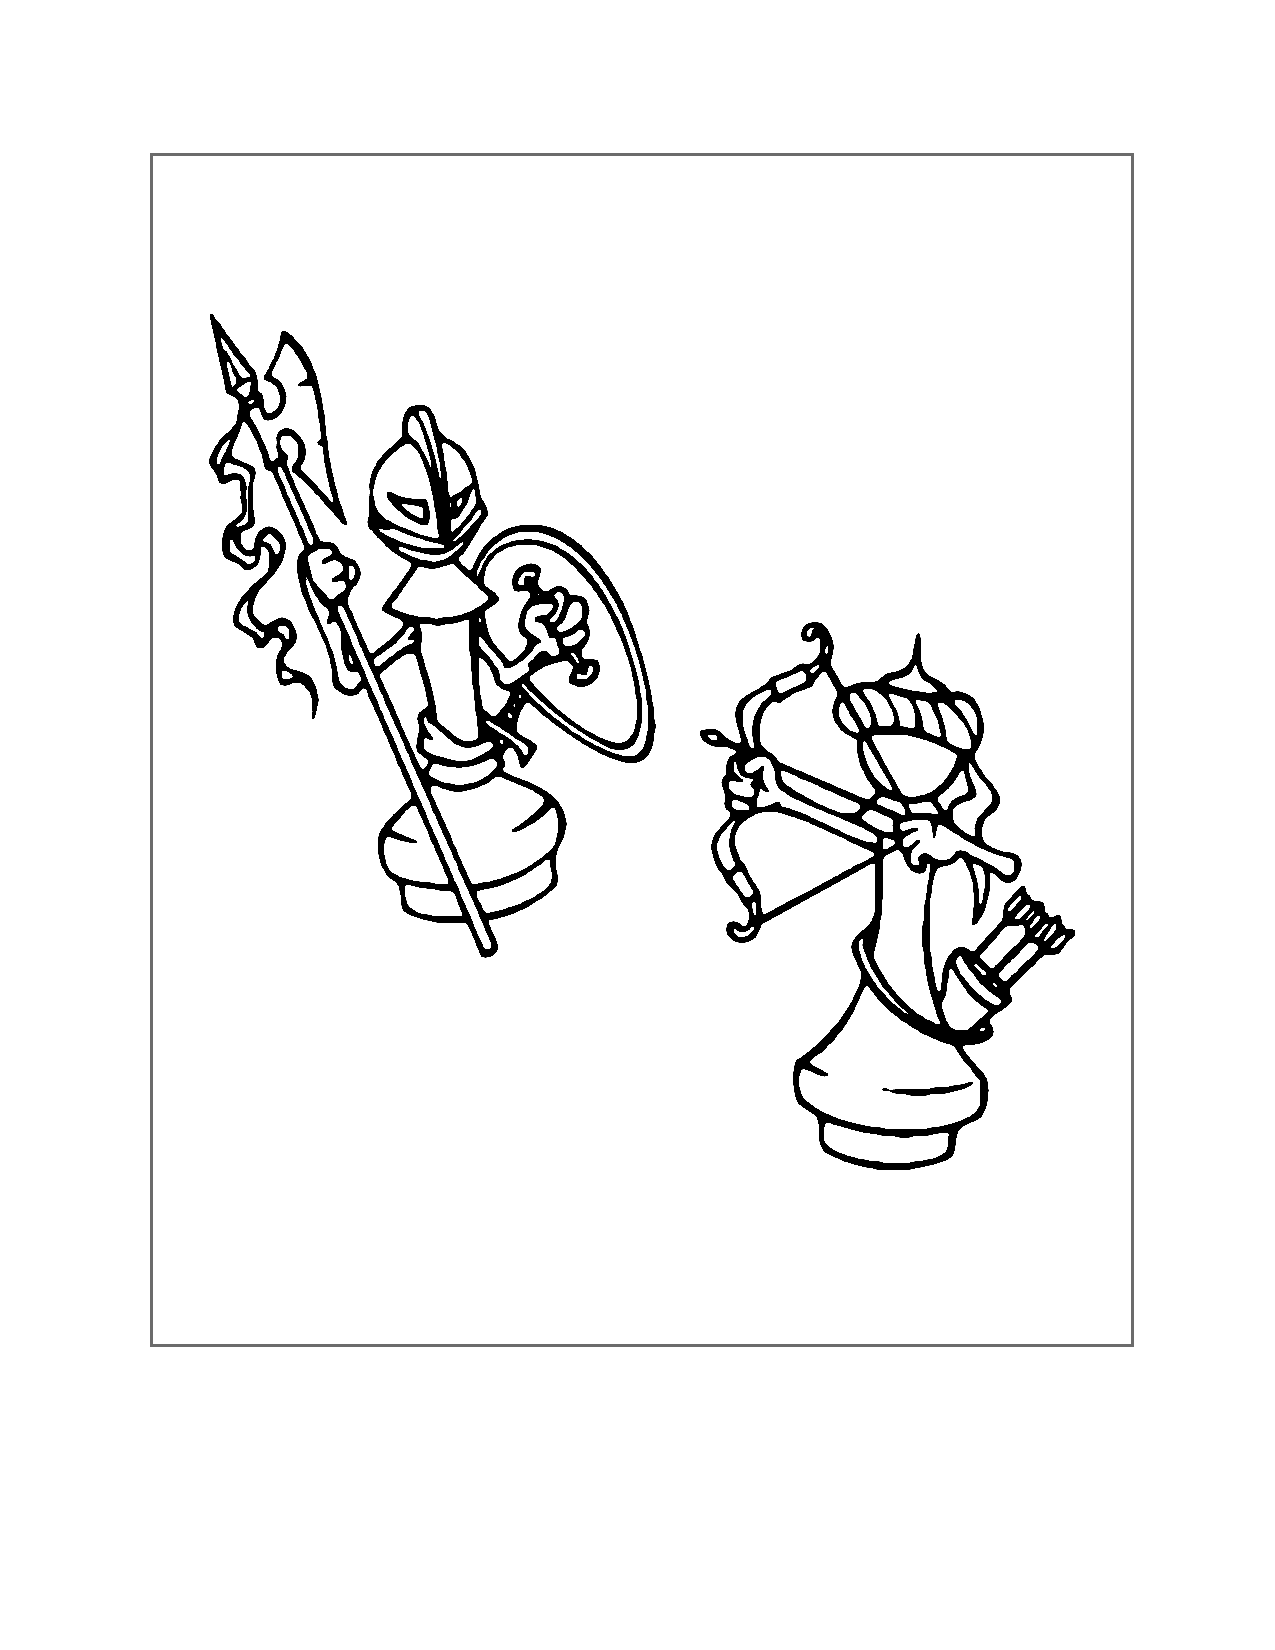 Chess Pieces Fighting Coloring Page